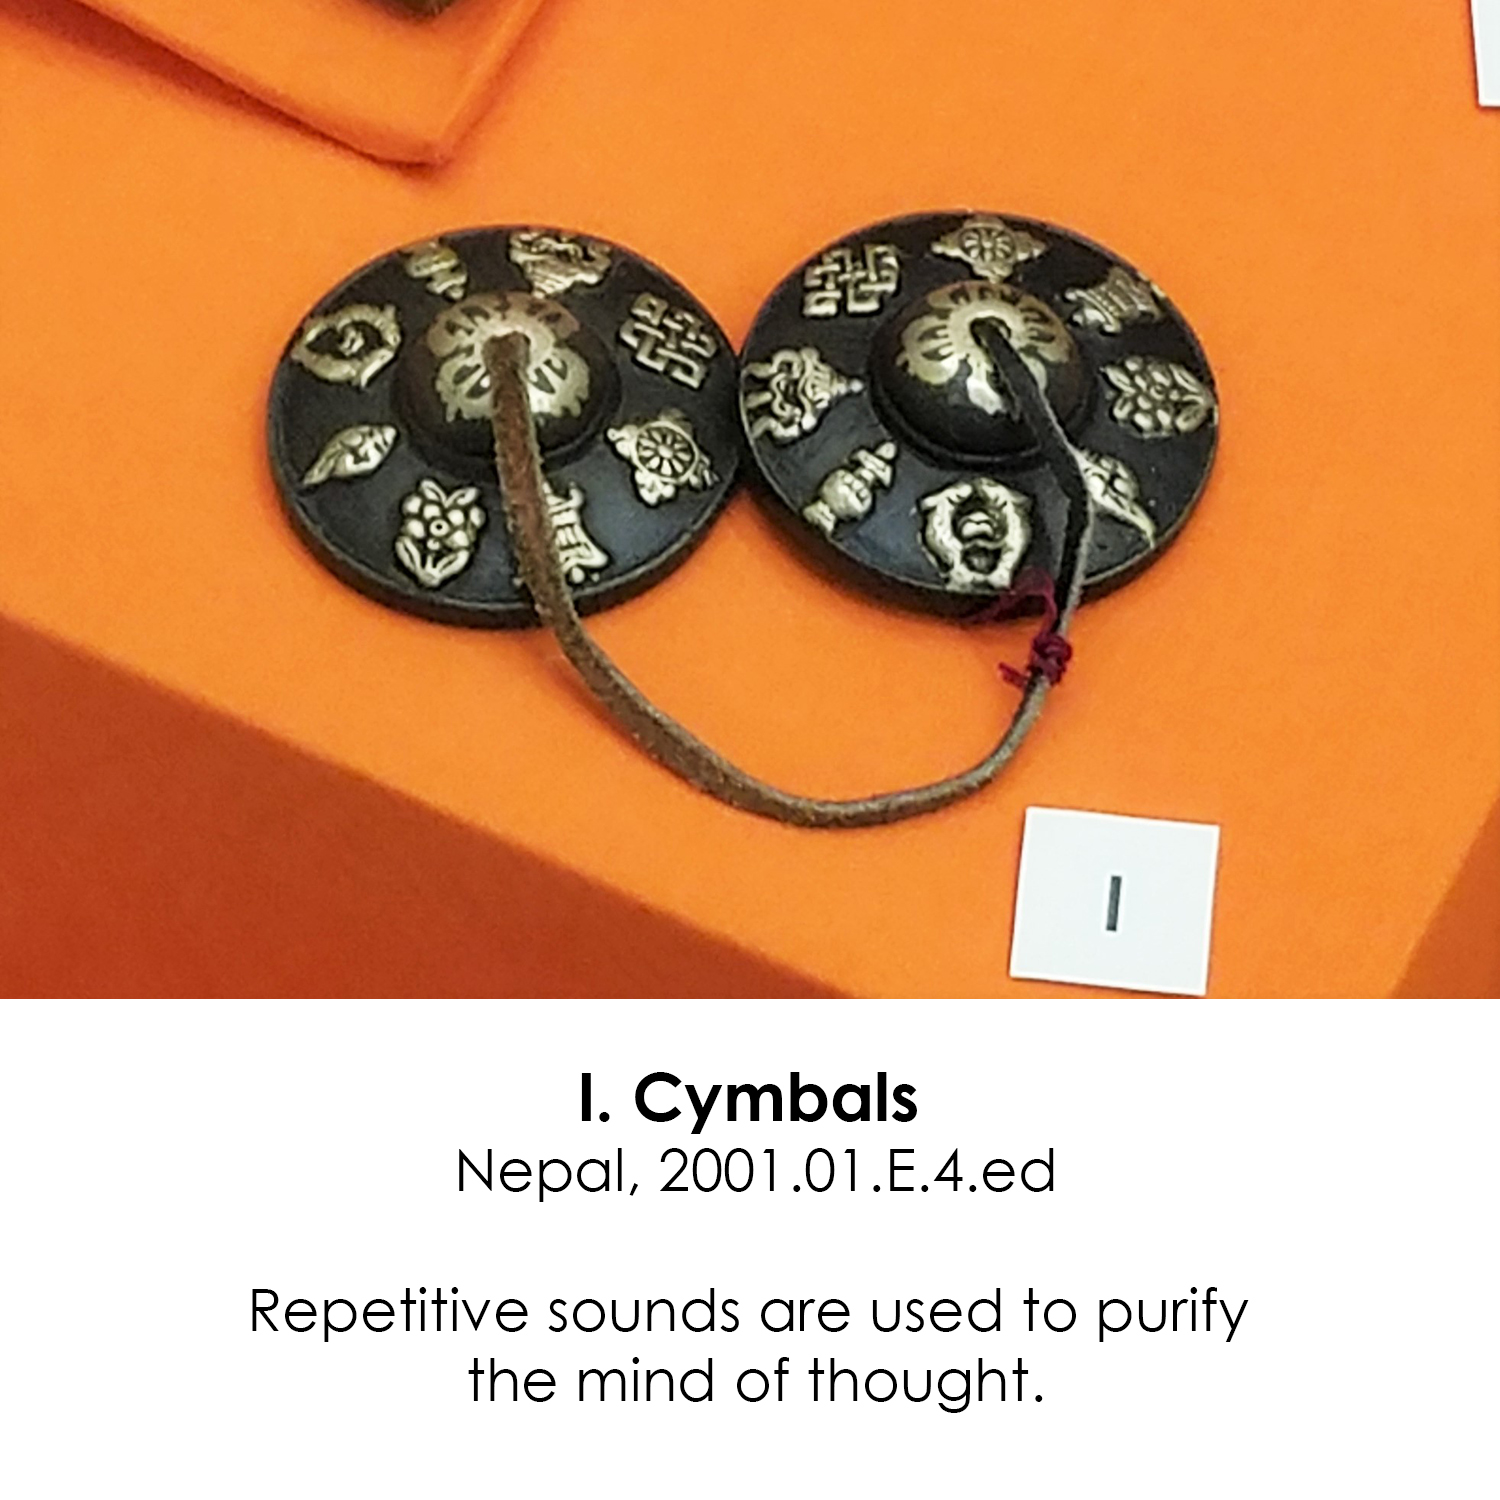 Buddhist Cymbals from Nepal